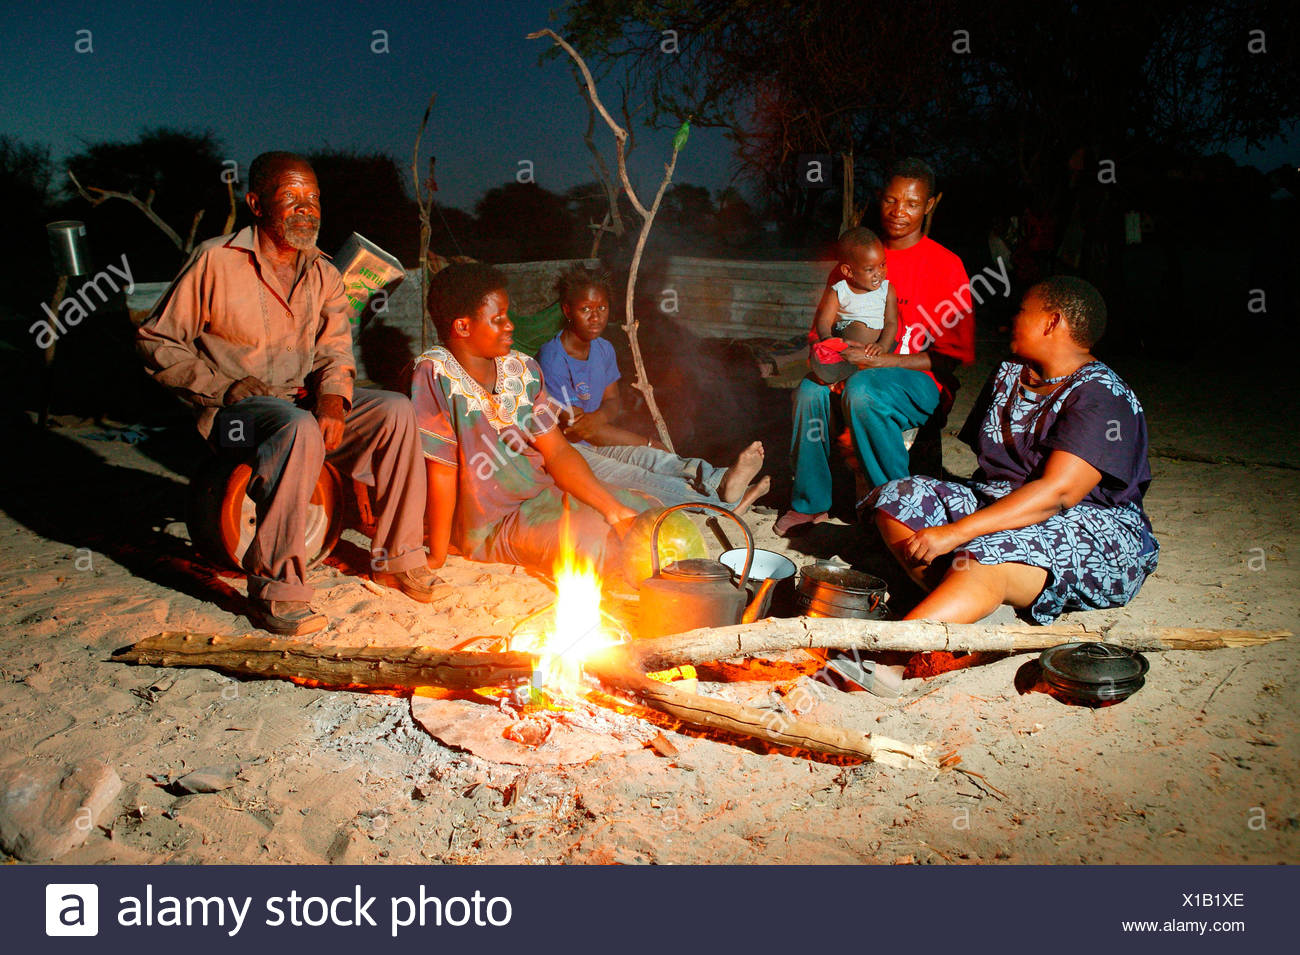 Group of people at the campfire, Cattlepost Bothatoga, Botswana, Africa - Stock Image